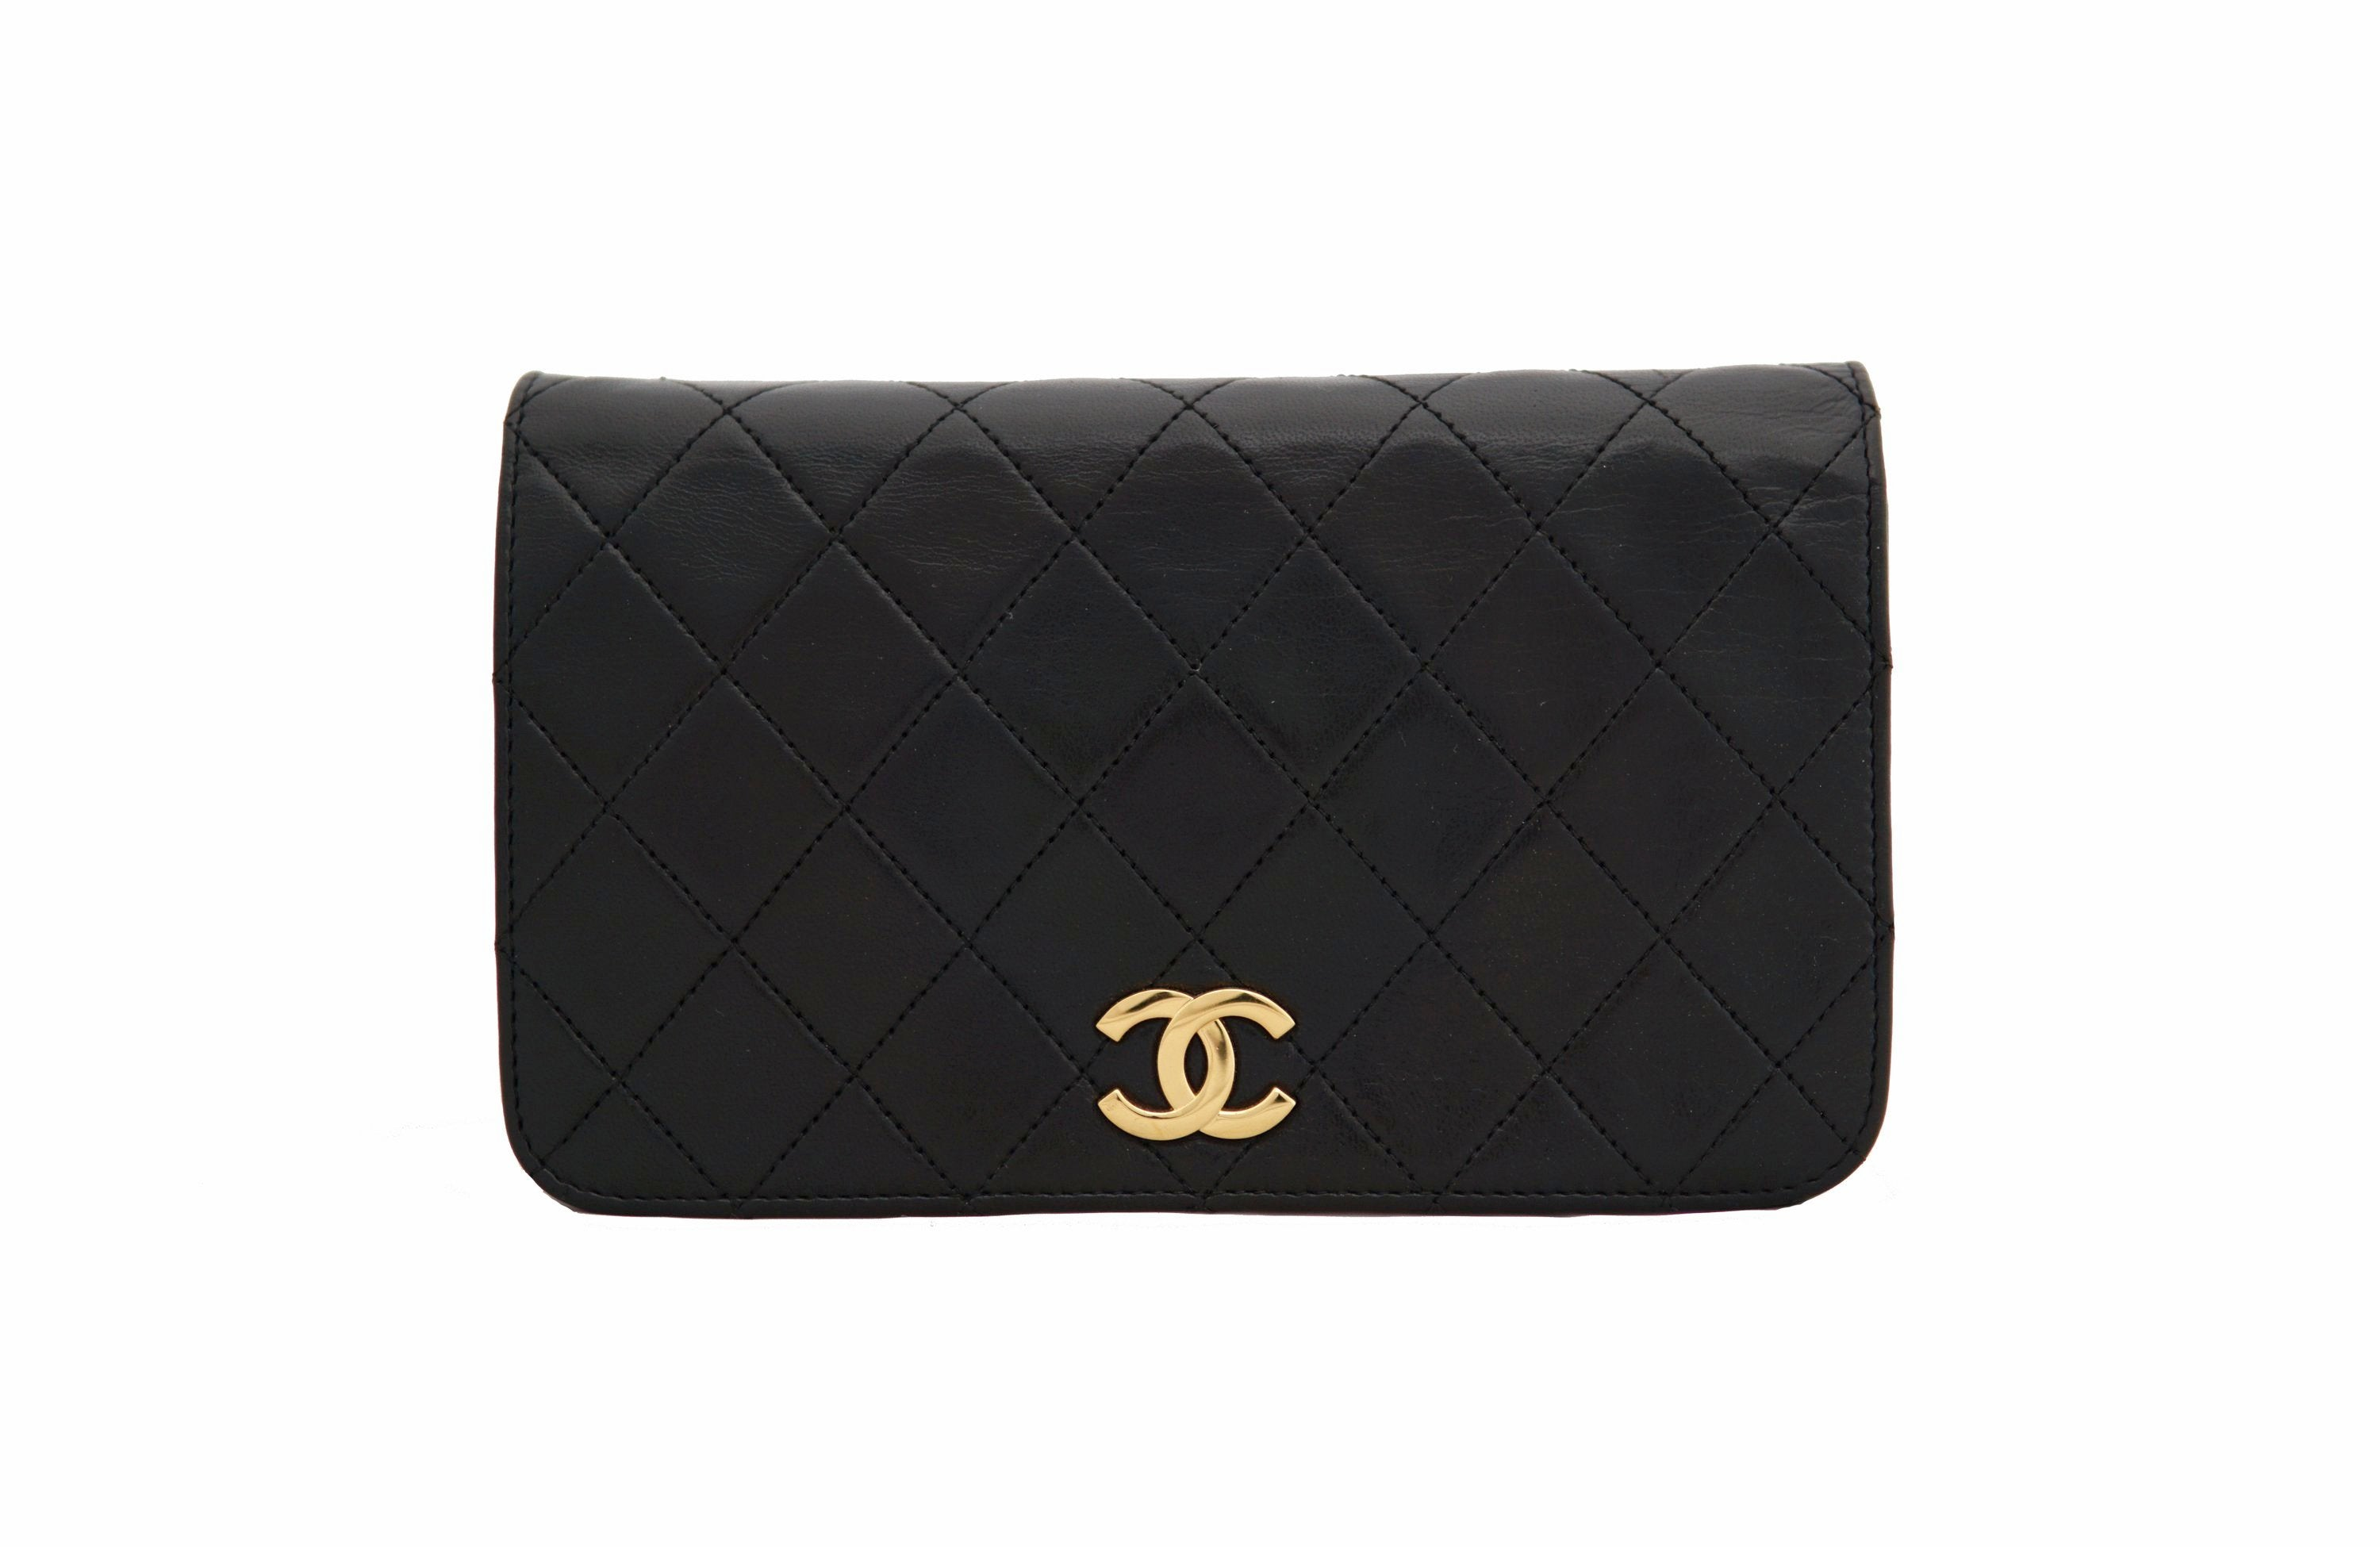 1fbcc11fa23d73 CHANEL VINTAGE BAG - Quilted Full Flap Lambskin in Black - Vintage District